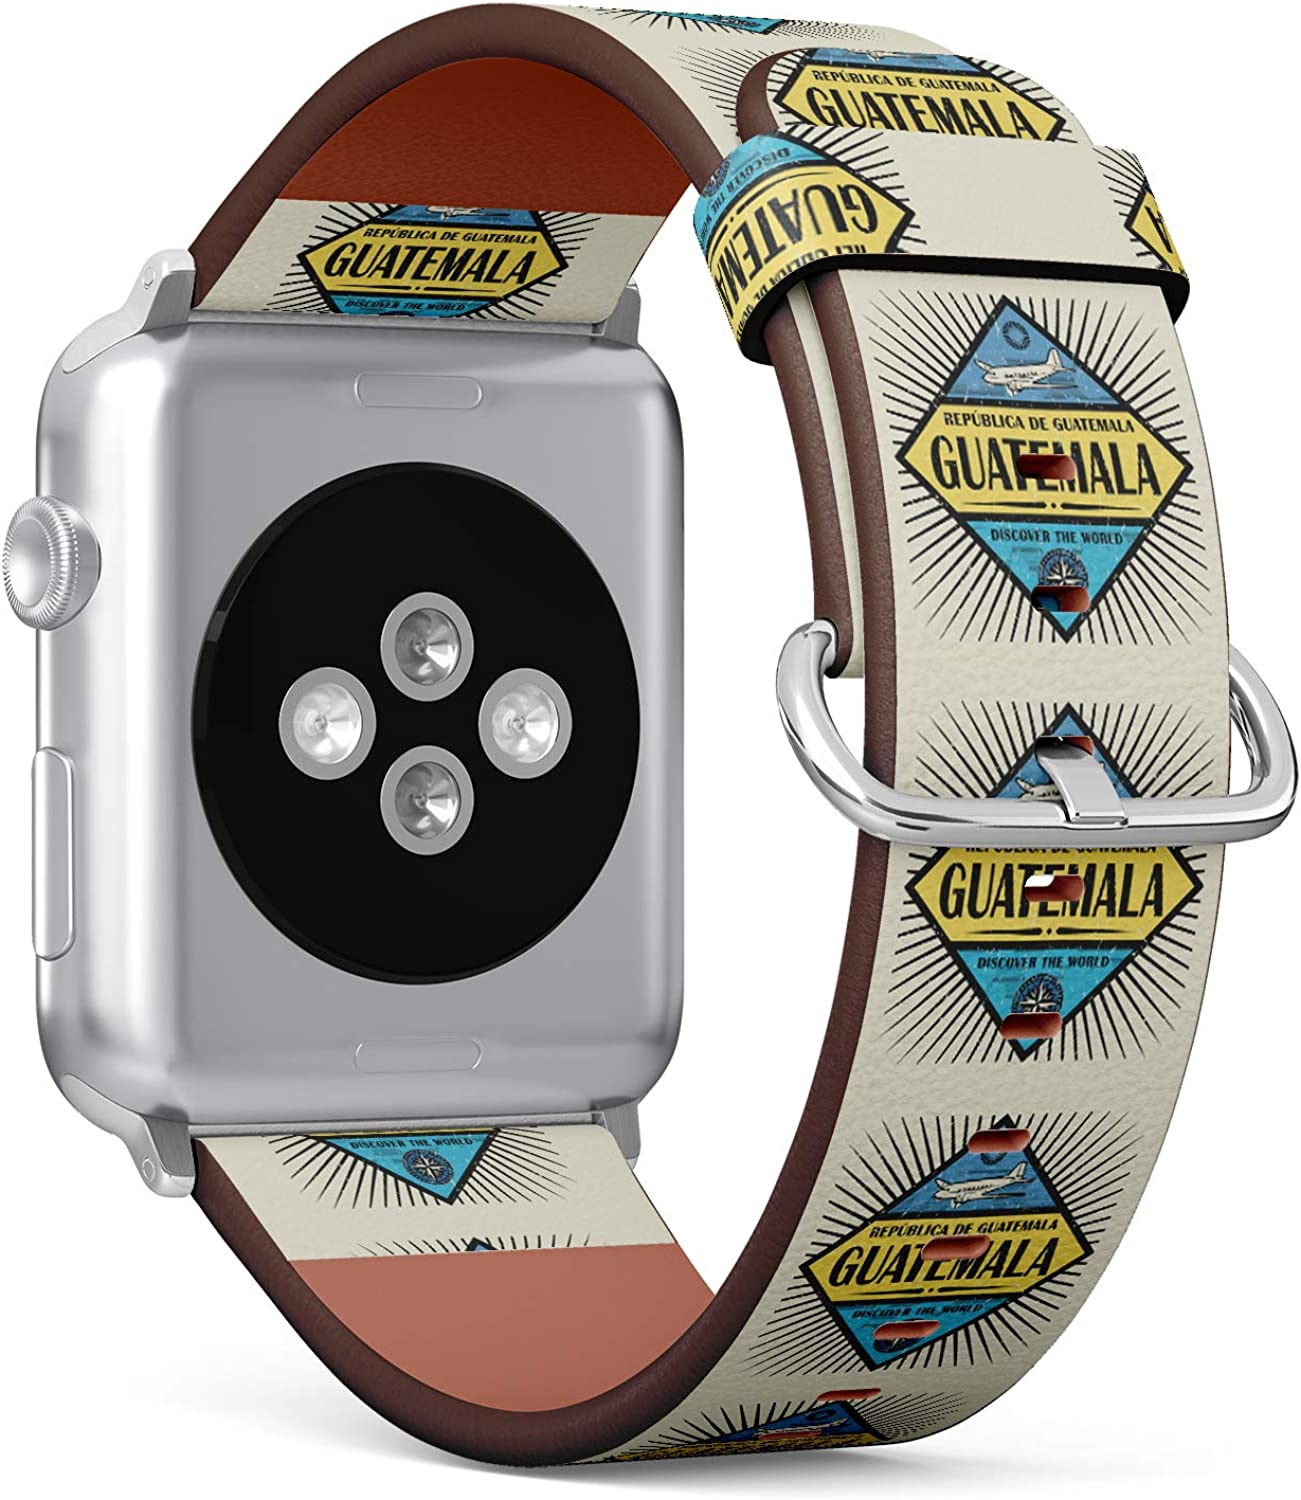 (Stamp or Vintage Emblem with Airplane, Compass and Text Guatemala) Patterned Leather Wristband Strap for Apple Watch Series 4/3/2/1 gen,Replacement for iWatch 42mm / 44mm Bands